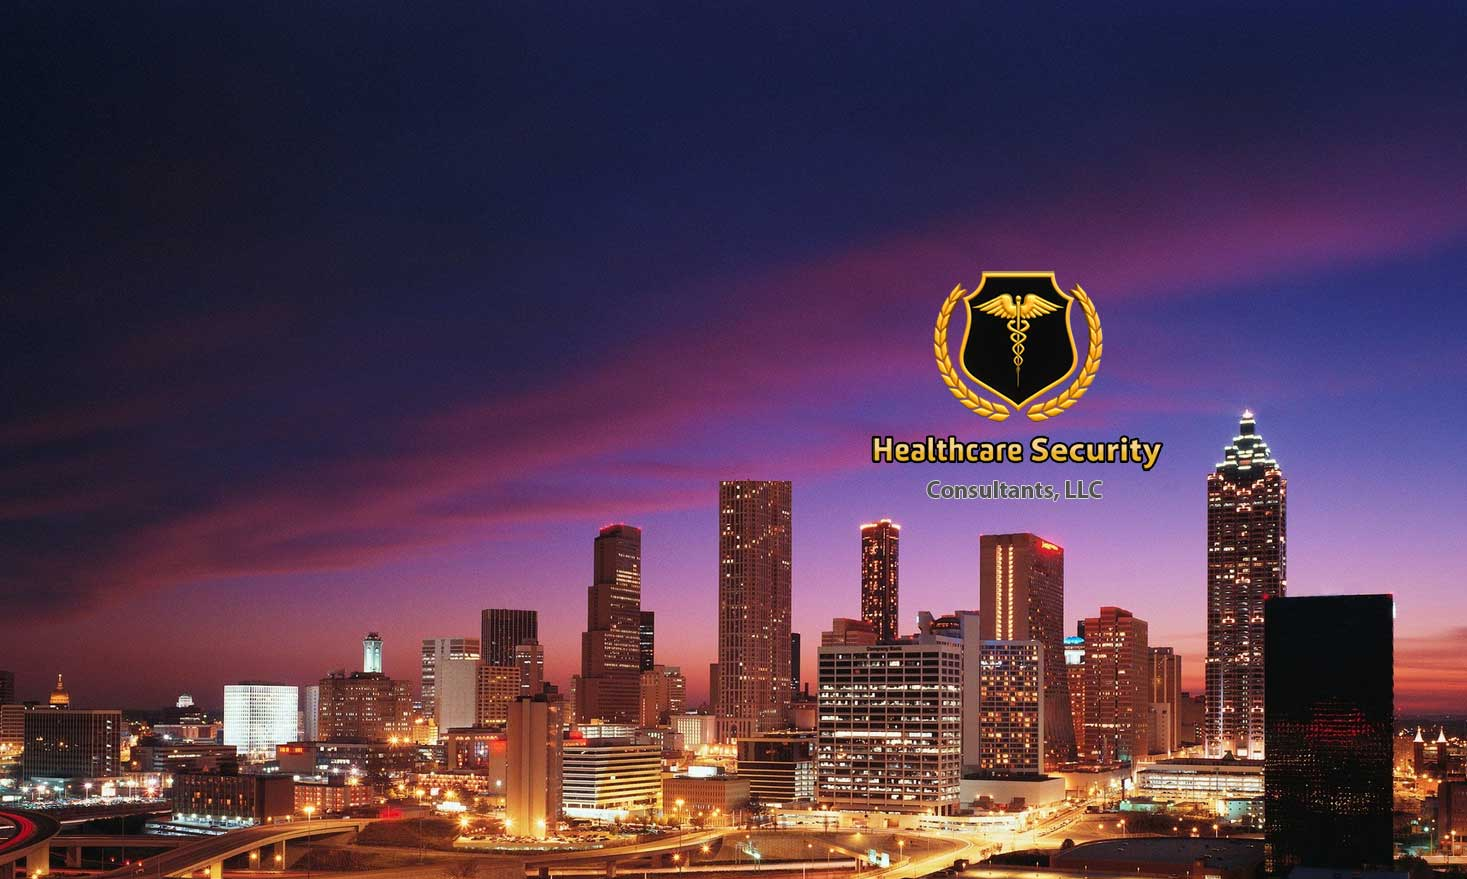 healthcare-security-consultants.com 24/7 I.T. Services and Support